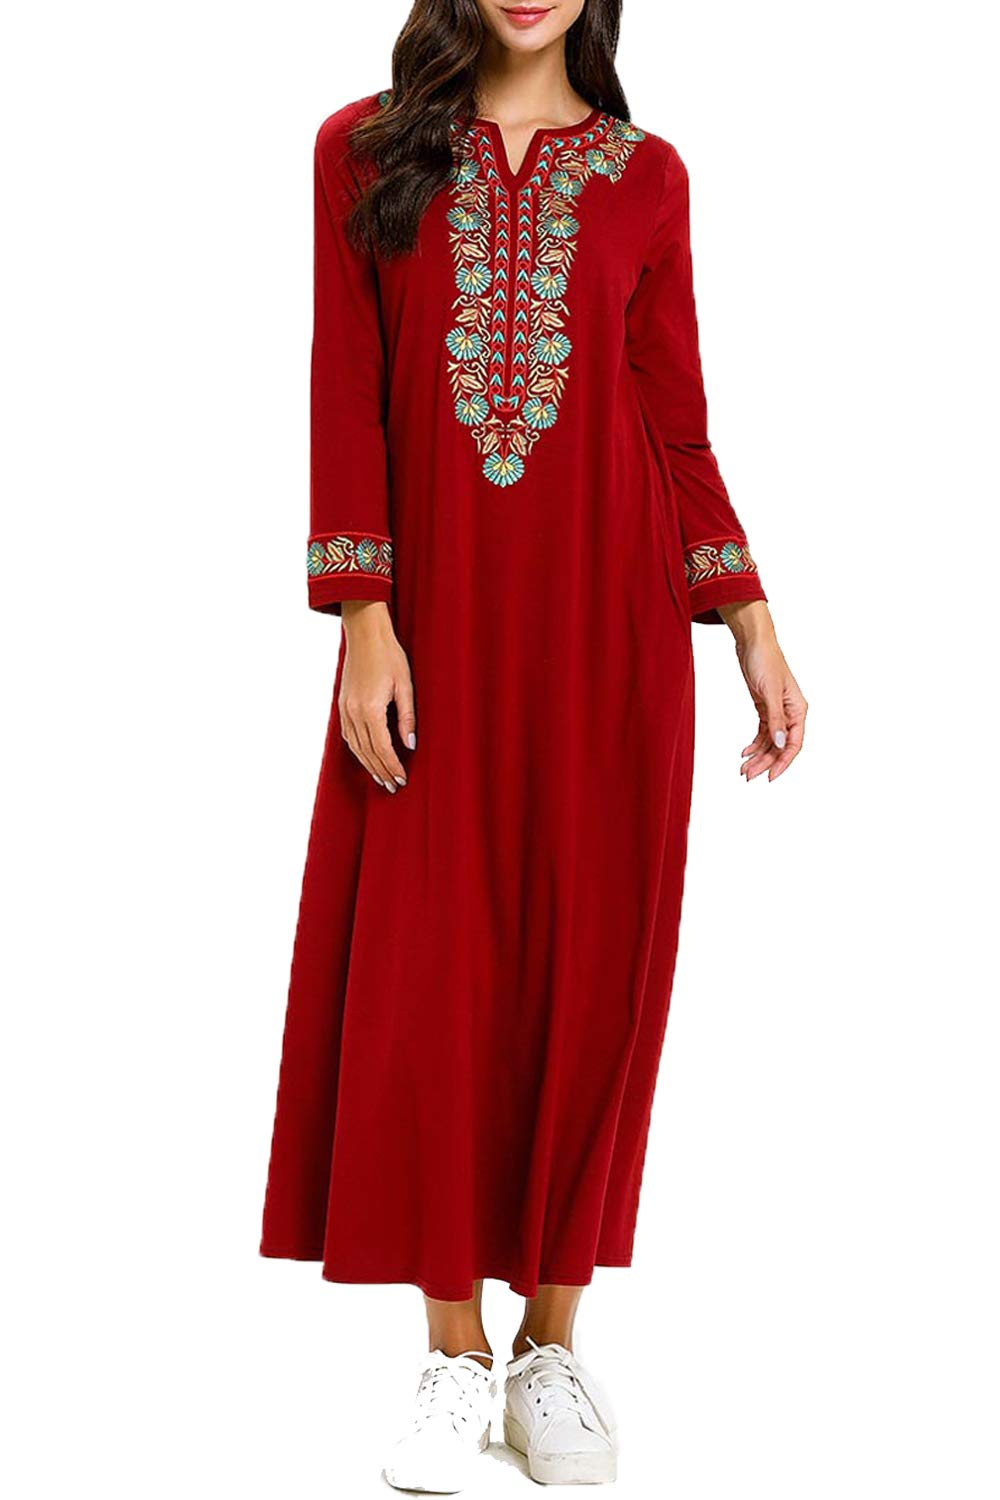 UAime Muslim Dress for Women Kaftan Long Sleeve Casual Maxi Dress Dubai Muslim Abaya Long Gown Long Dress